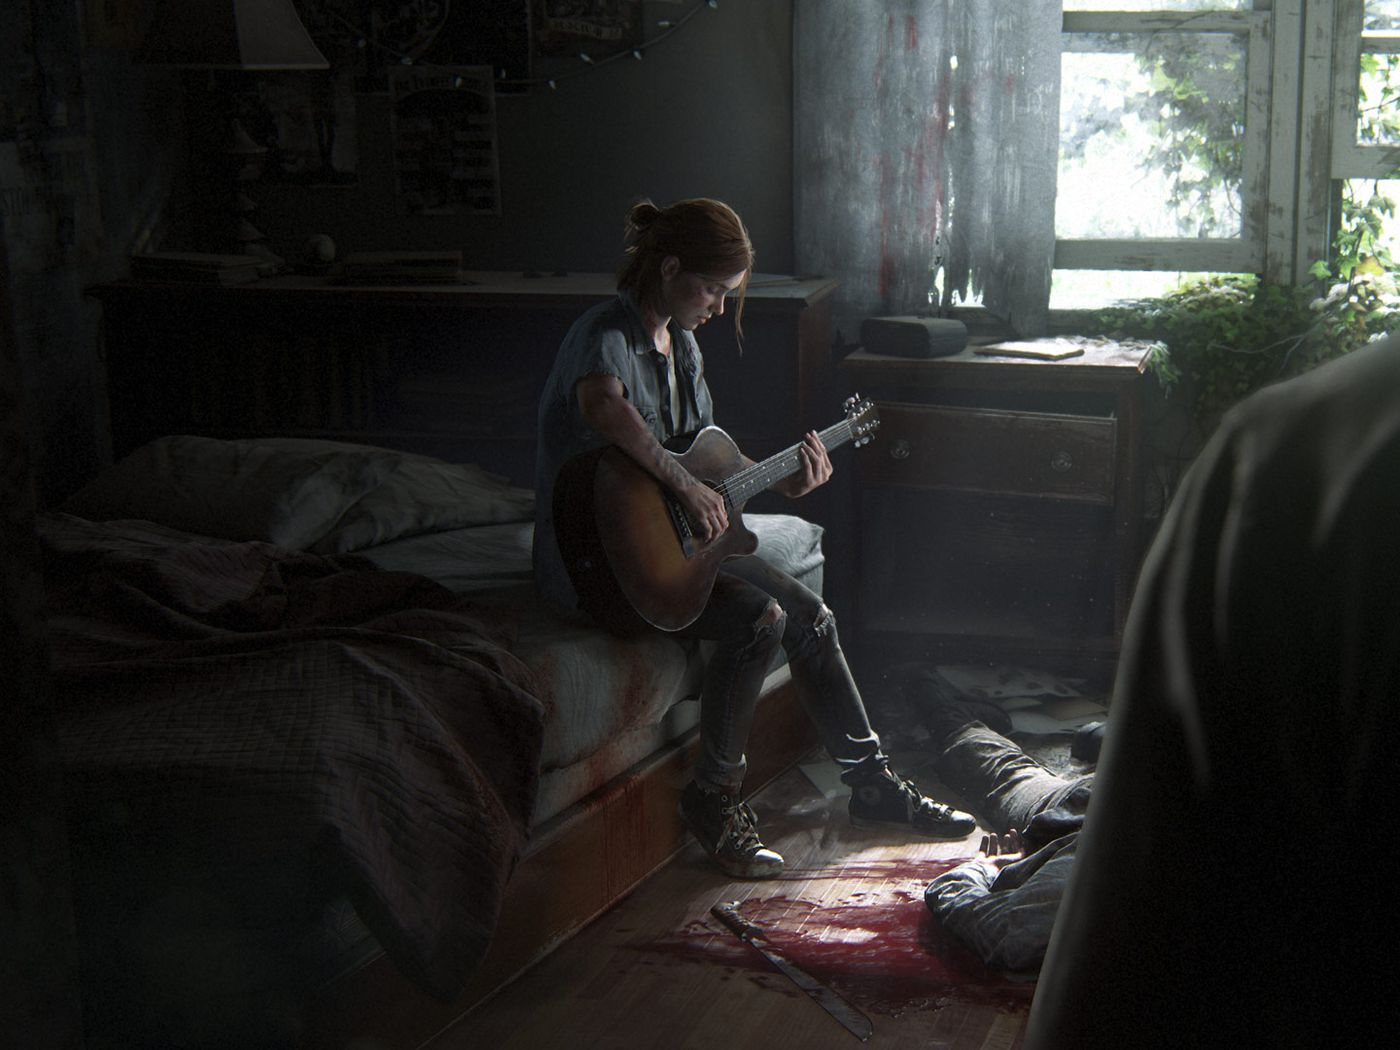 The Last Of Us Part Ii Hd Wallpapers Lust Of Us 2 Hd Wallpapers